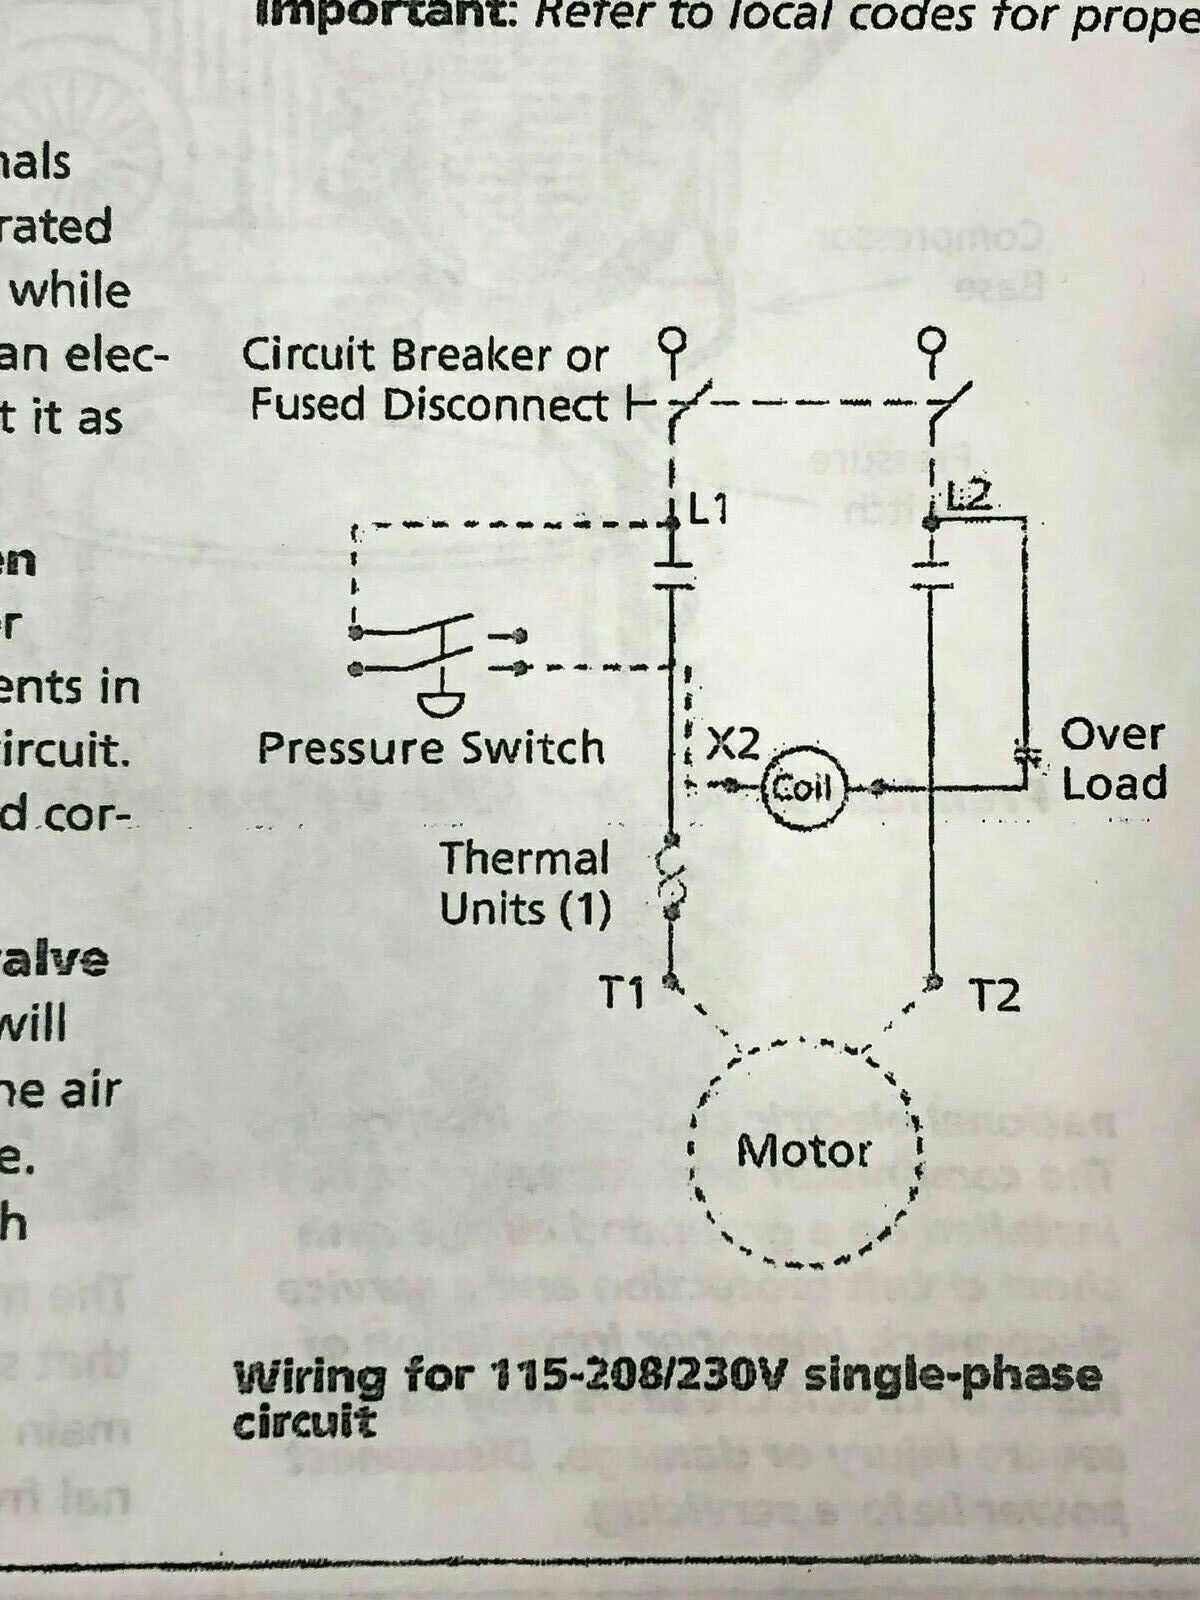 sanborn air compressor centrifugal switch with wiring diagram chicago pneumatic magnetic starter 5hp single phase 208 240 volt  5hp single phase 208 240 volt